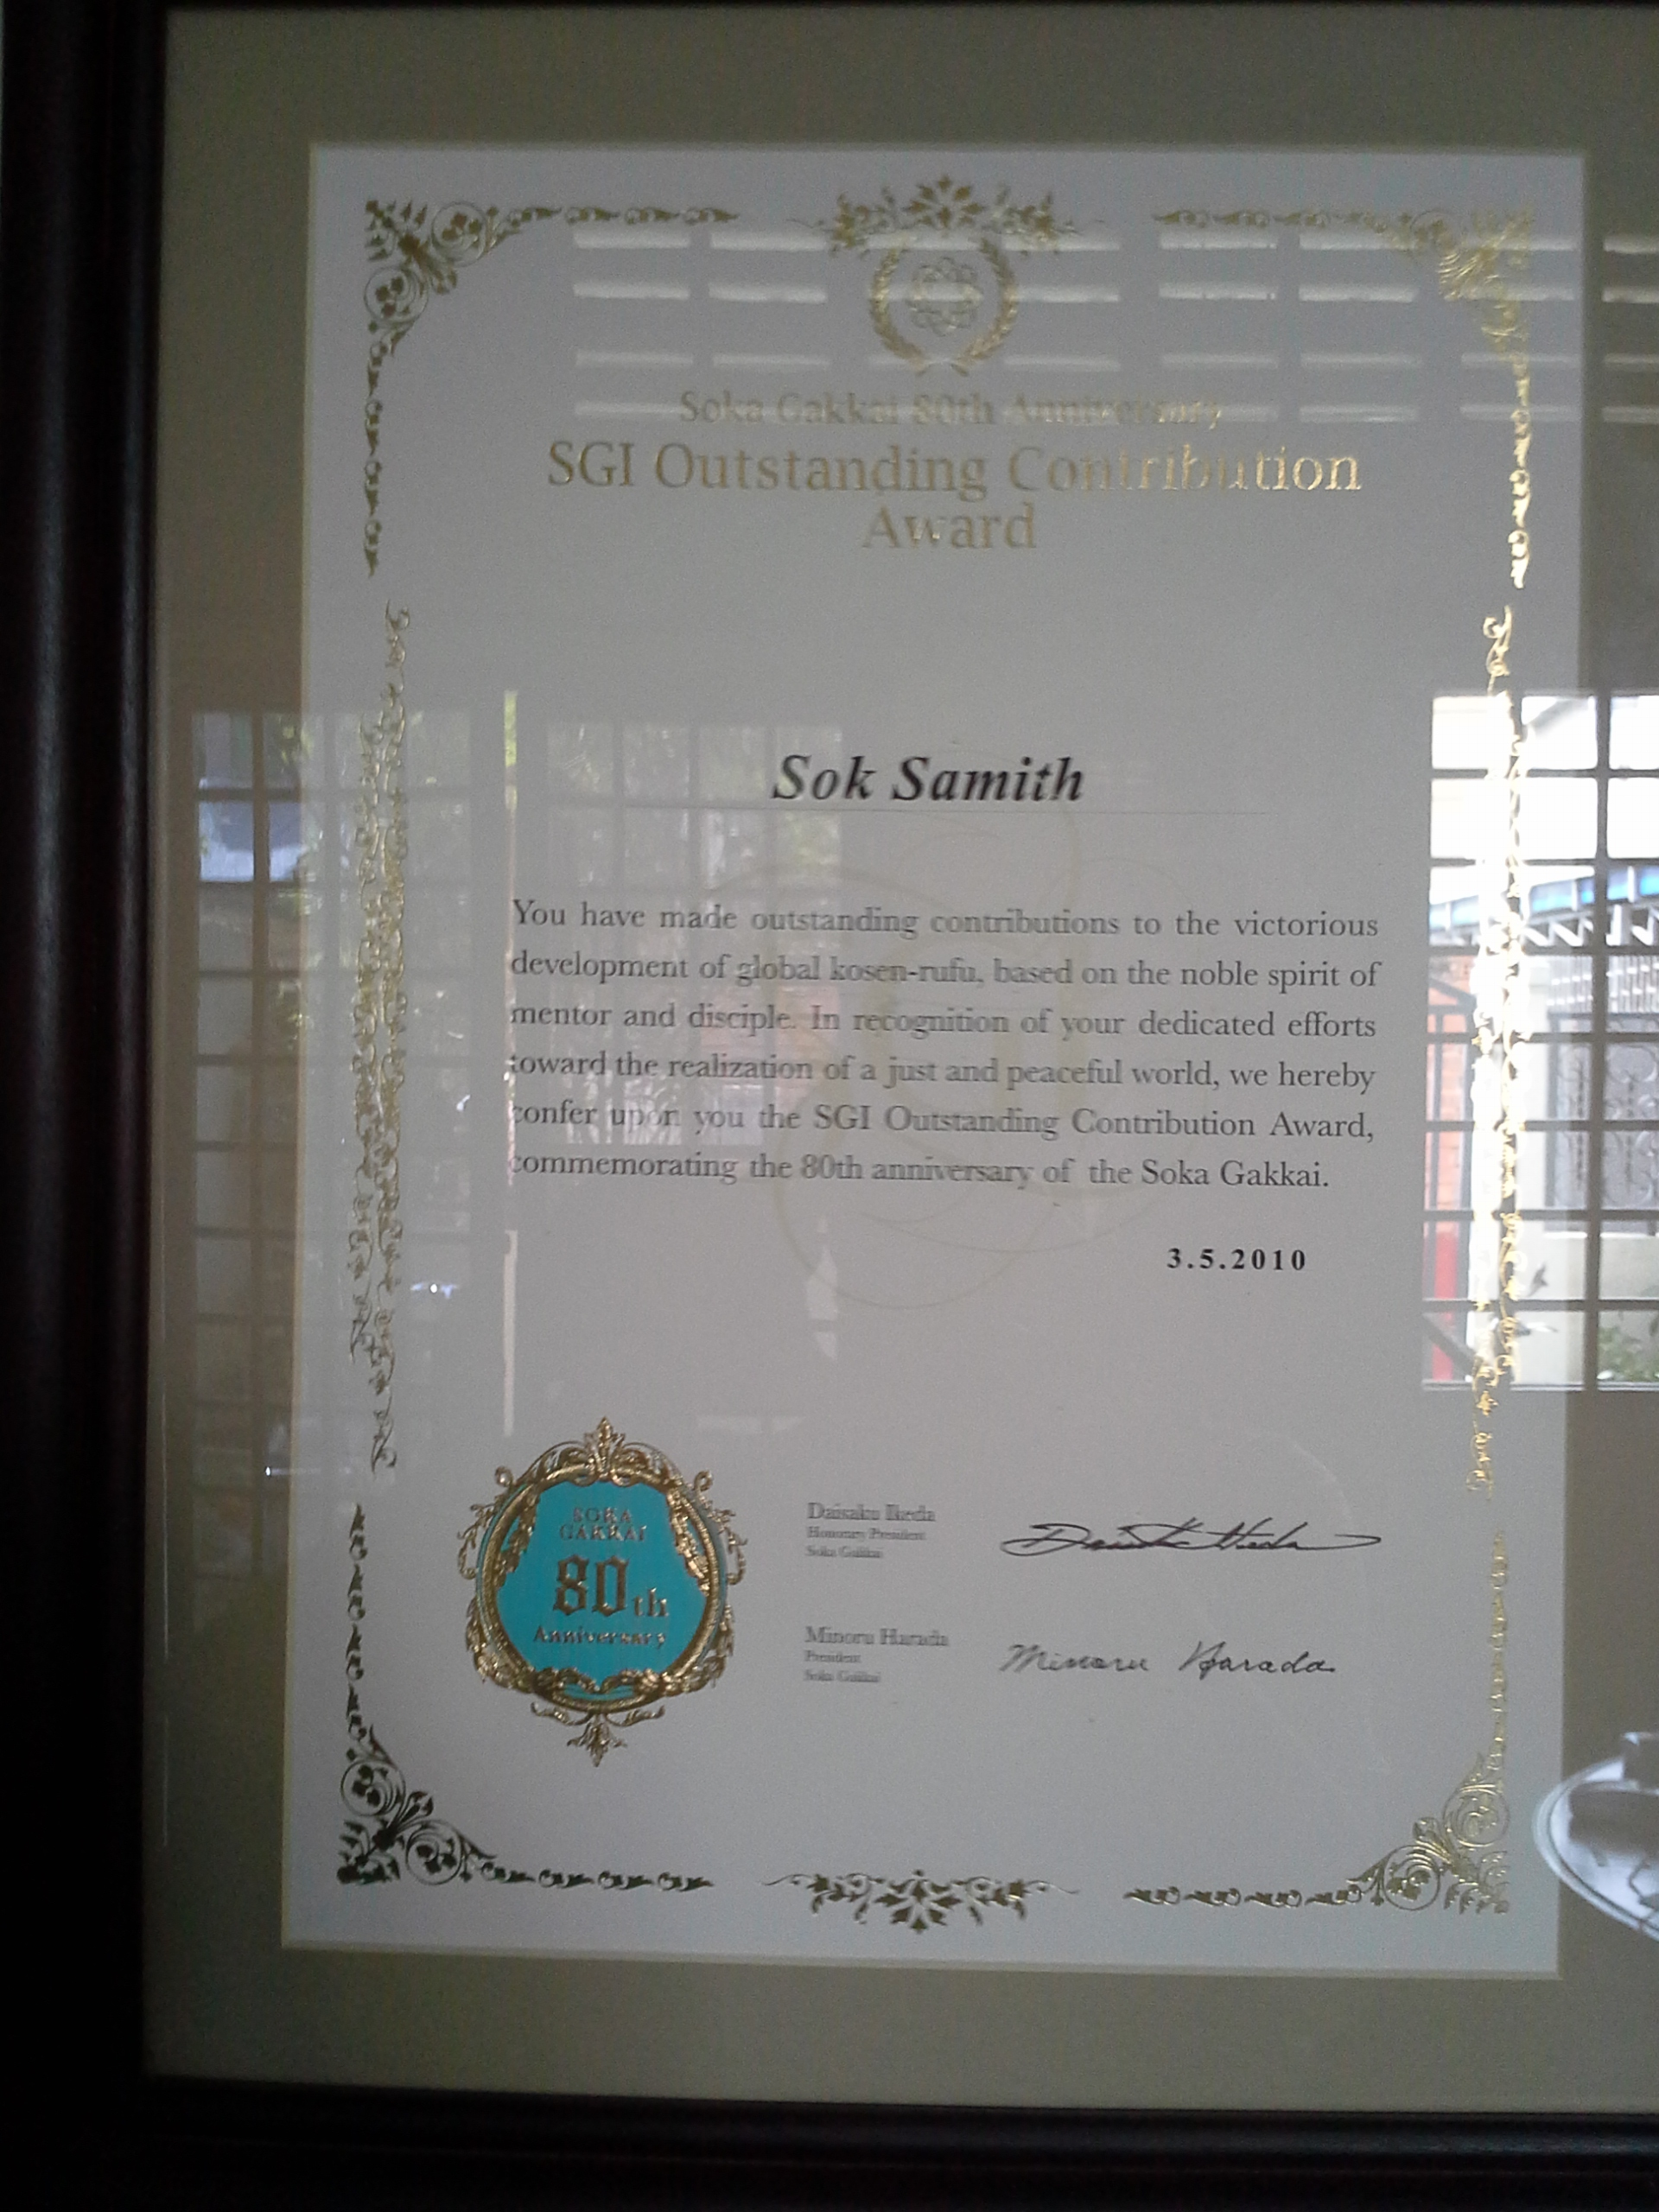 SGI Outstanding Contribution Award, 2010